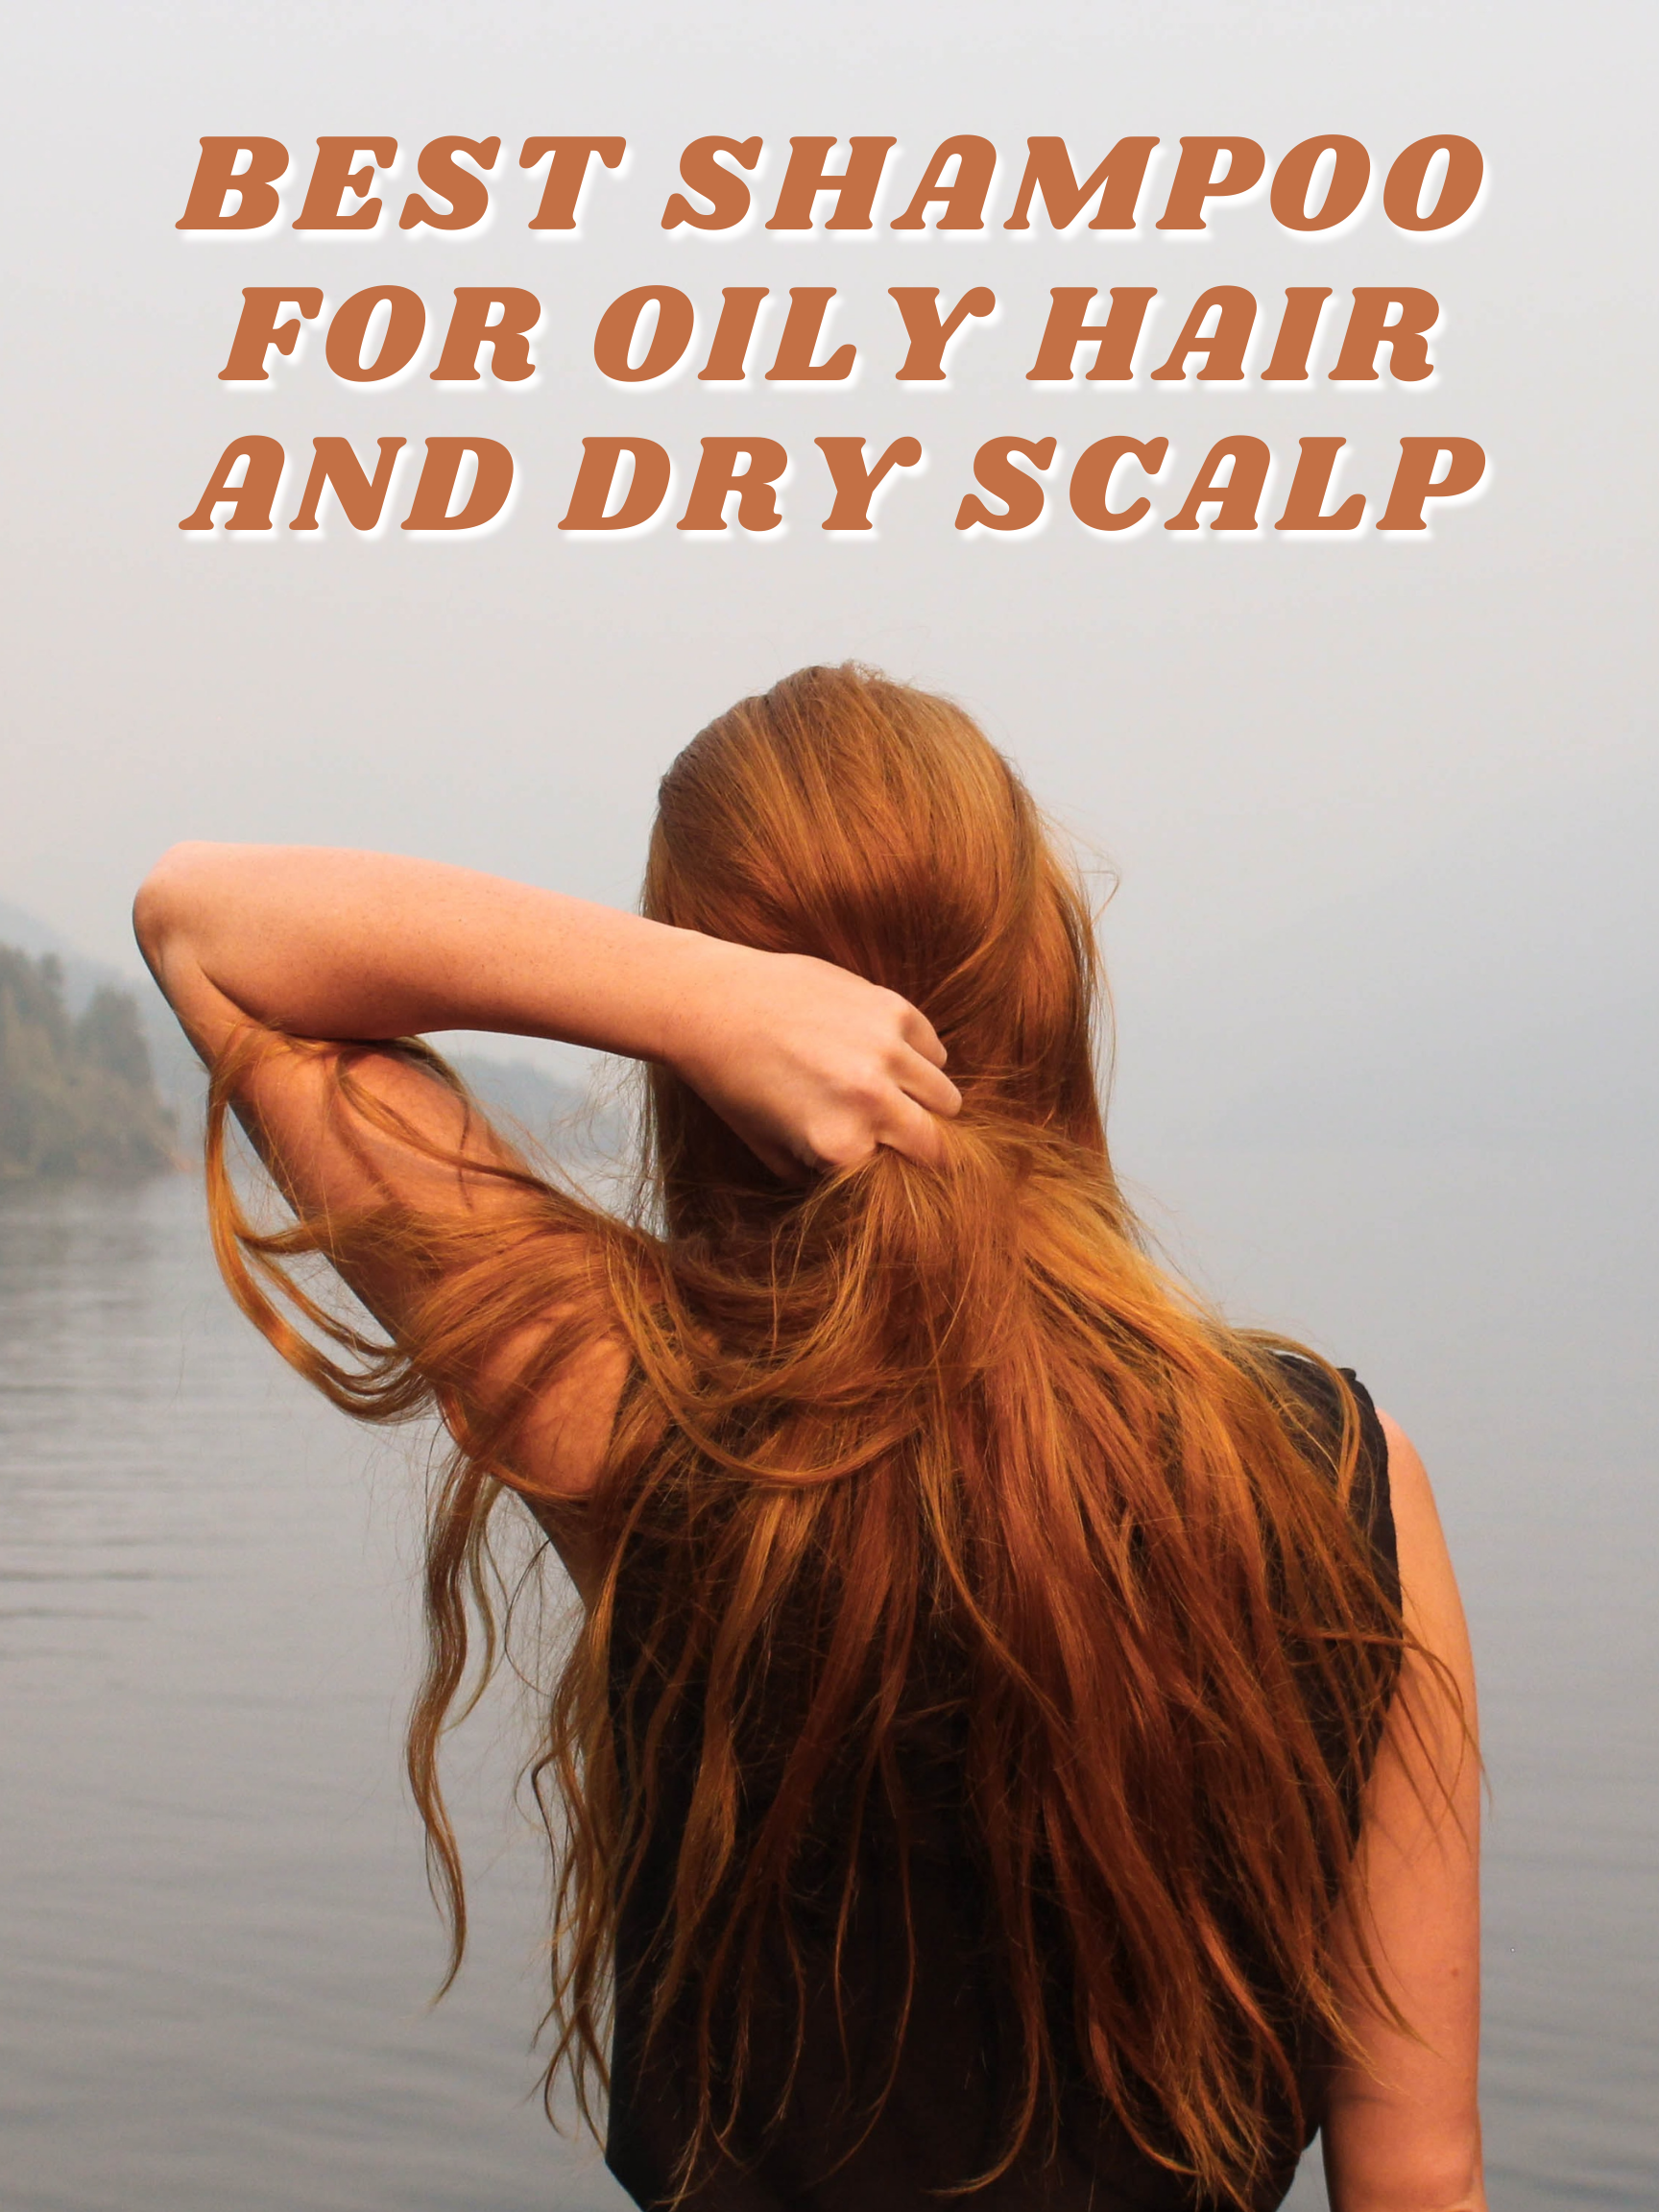 Oily Hair and Dry Scalp